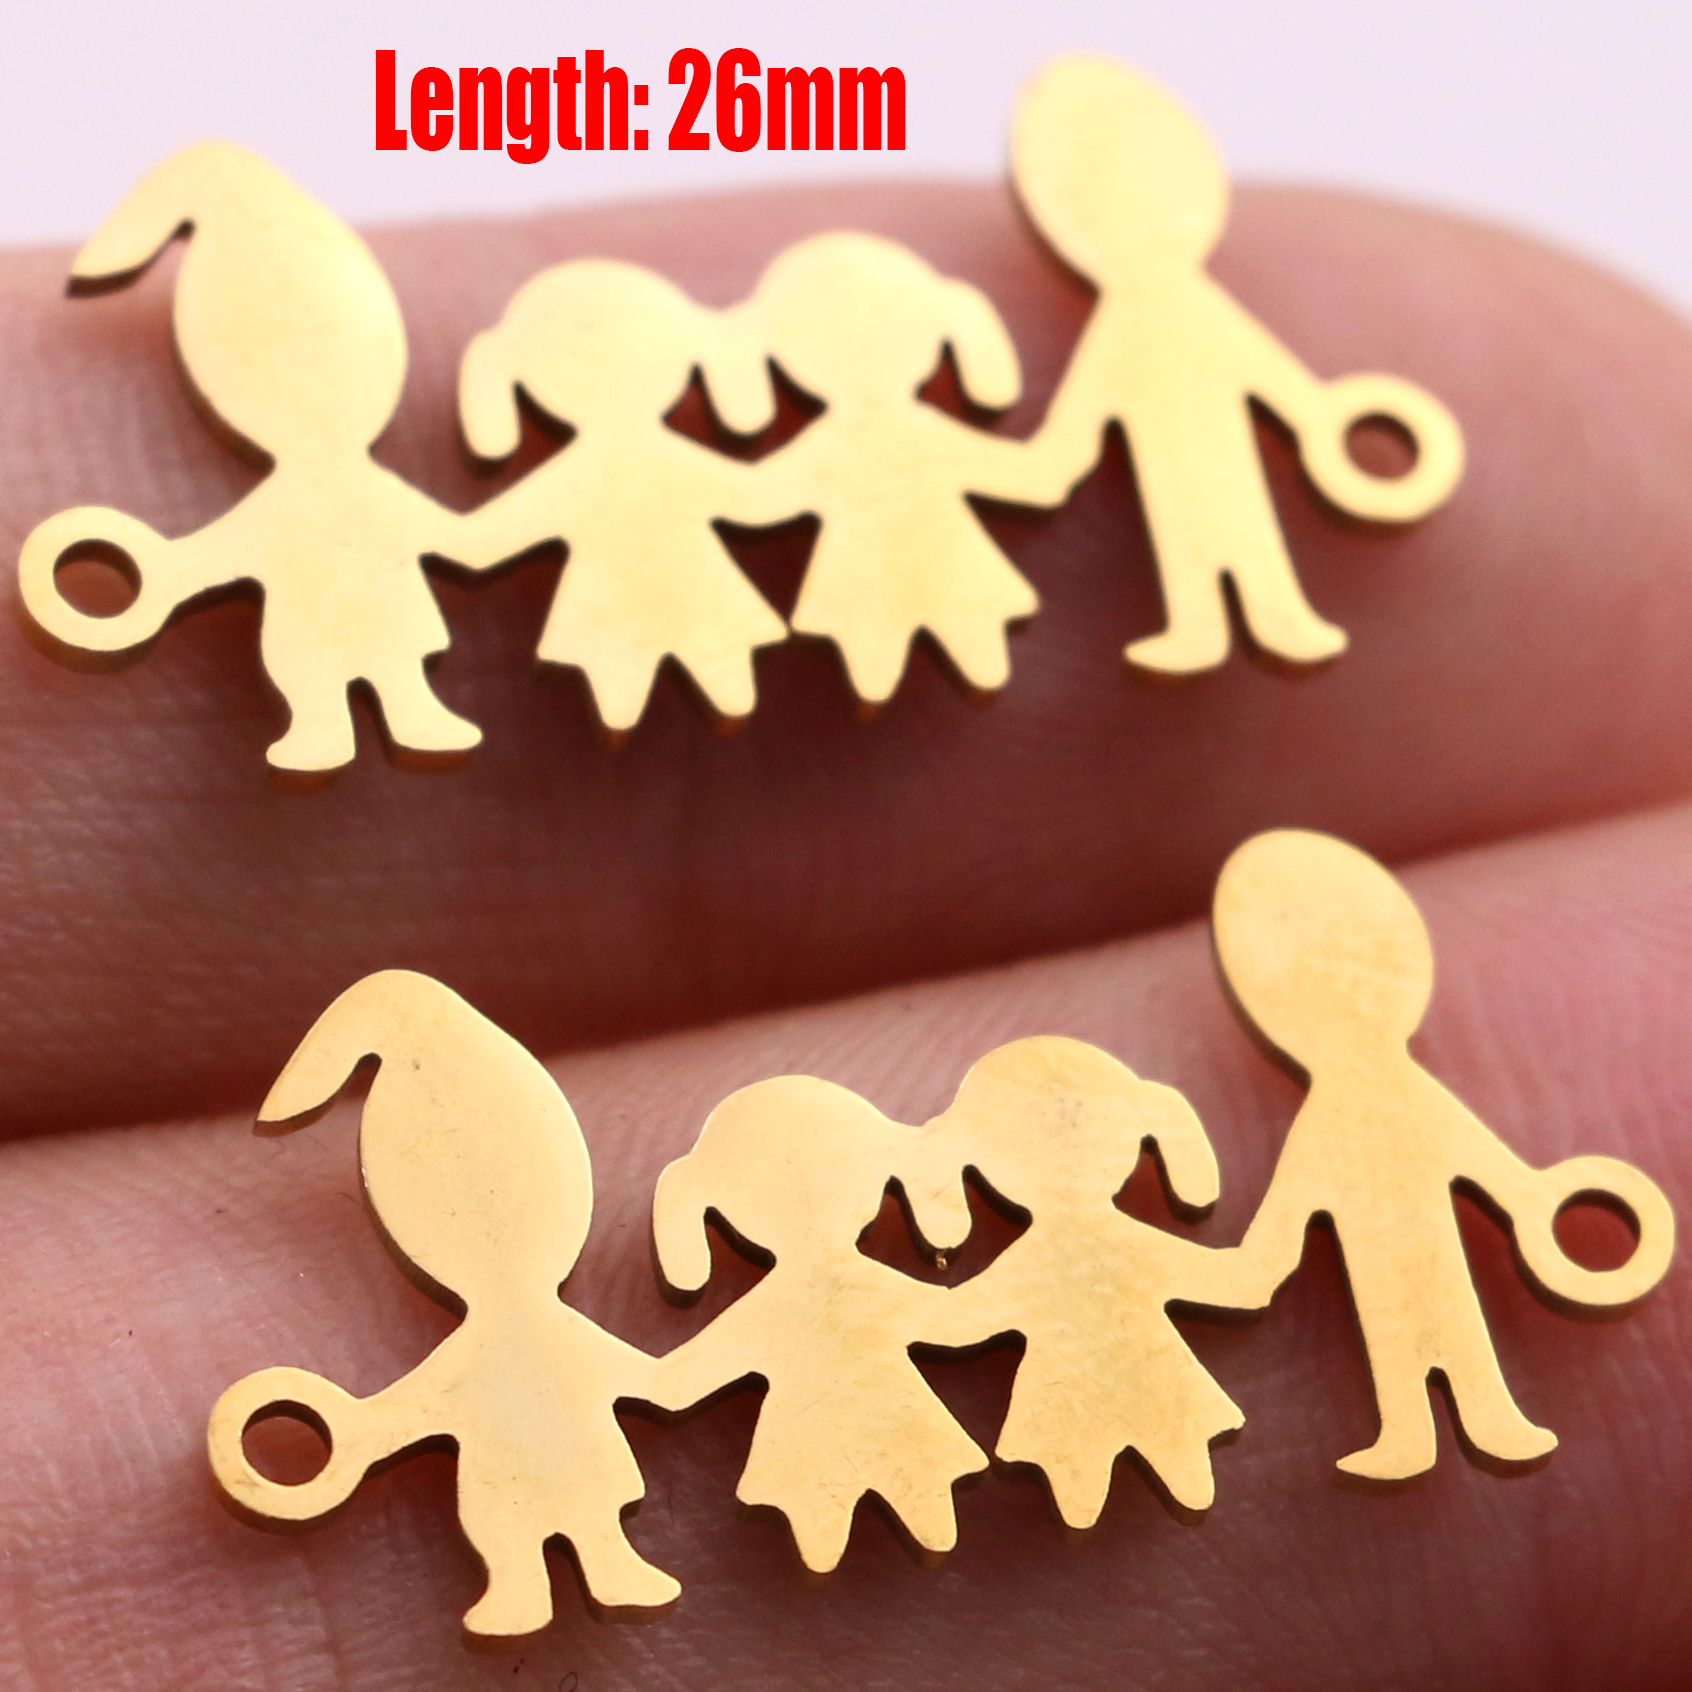 5pcs Family Chain Stainless Steel Pendant Necklace Parents and Children Necklaces Gold/steel Jewelry Gift for Mom Dad New Twice - Цвет: Gold 27